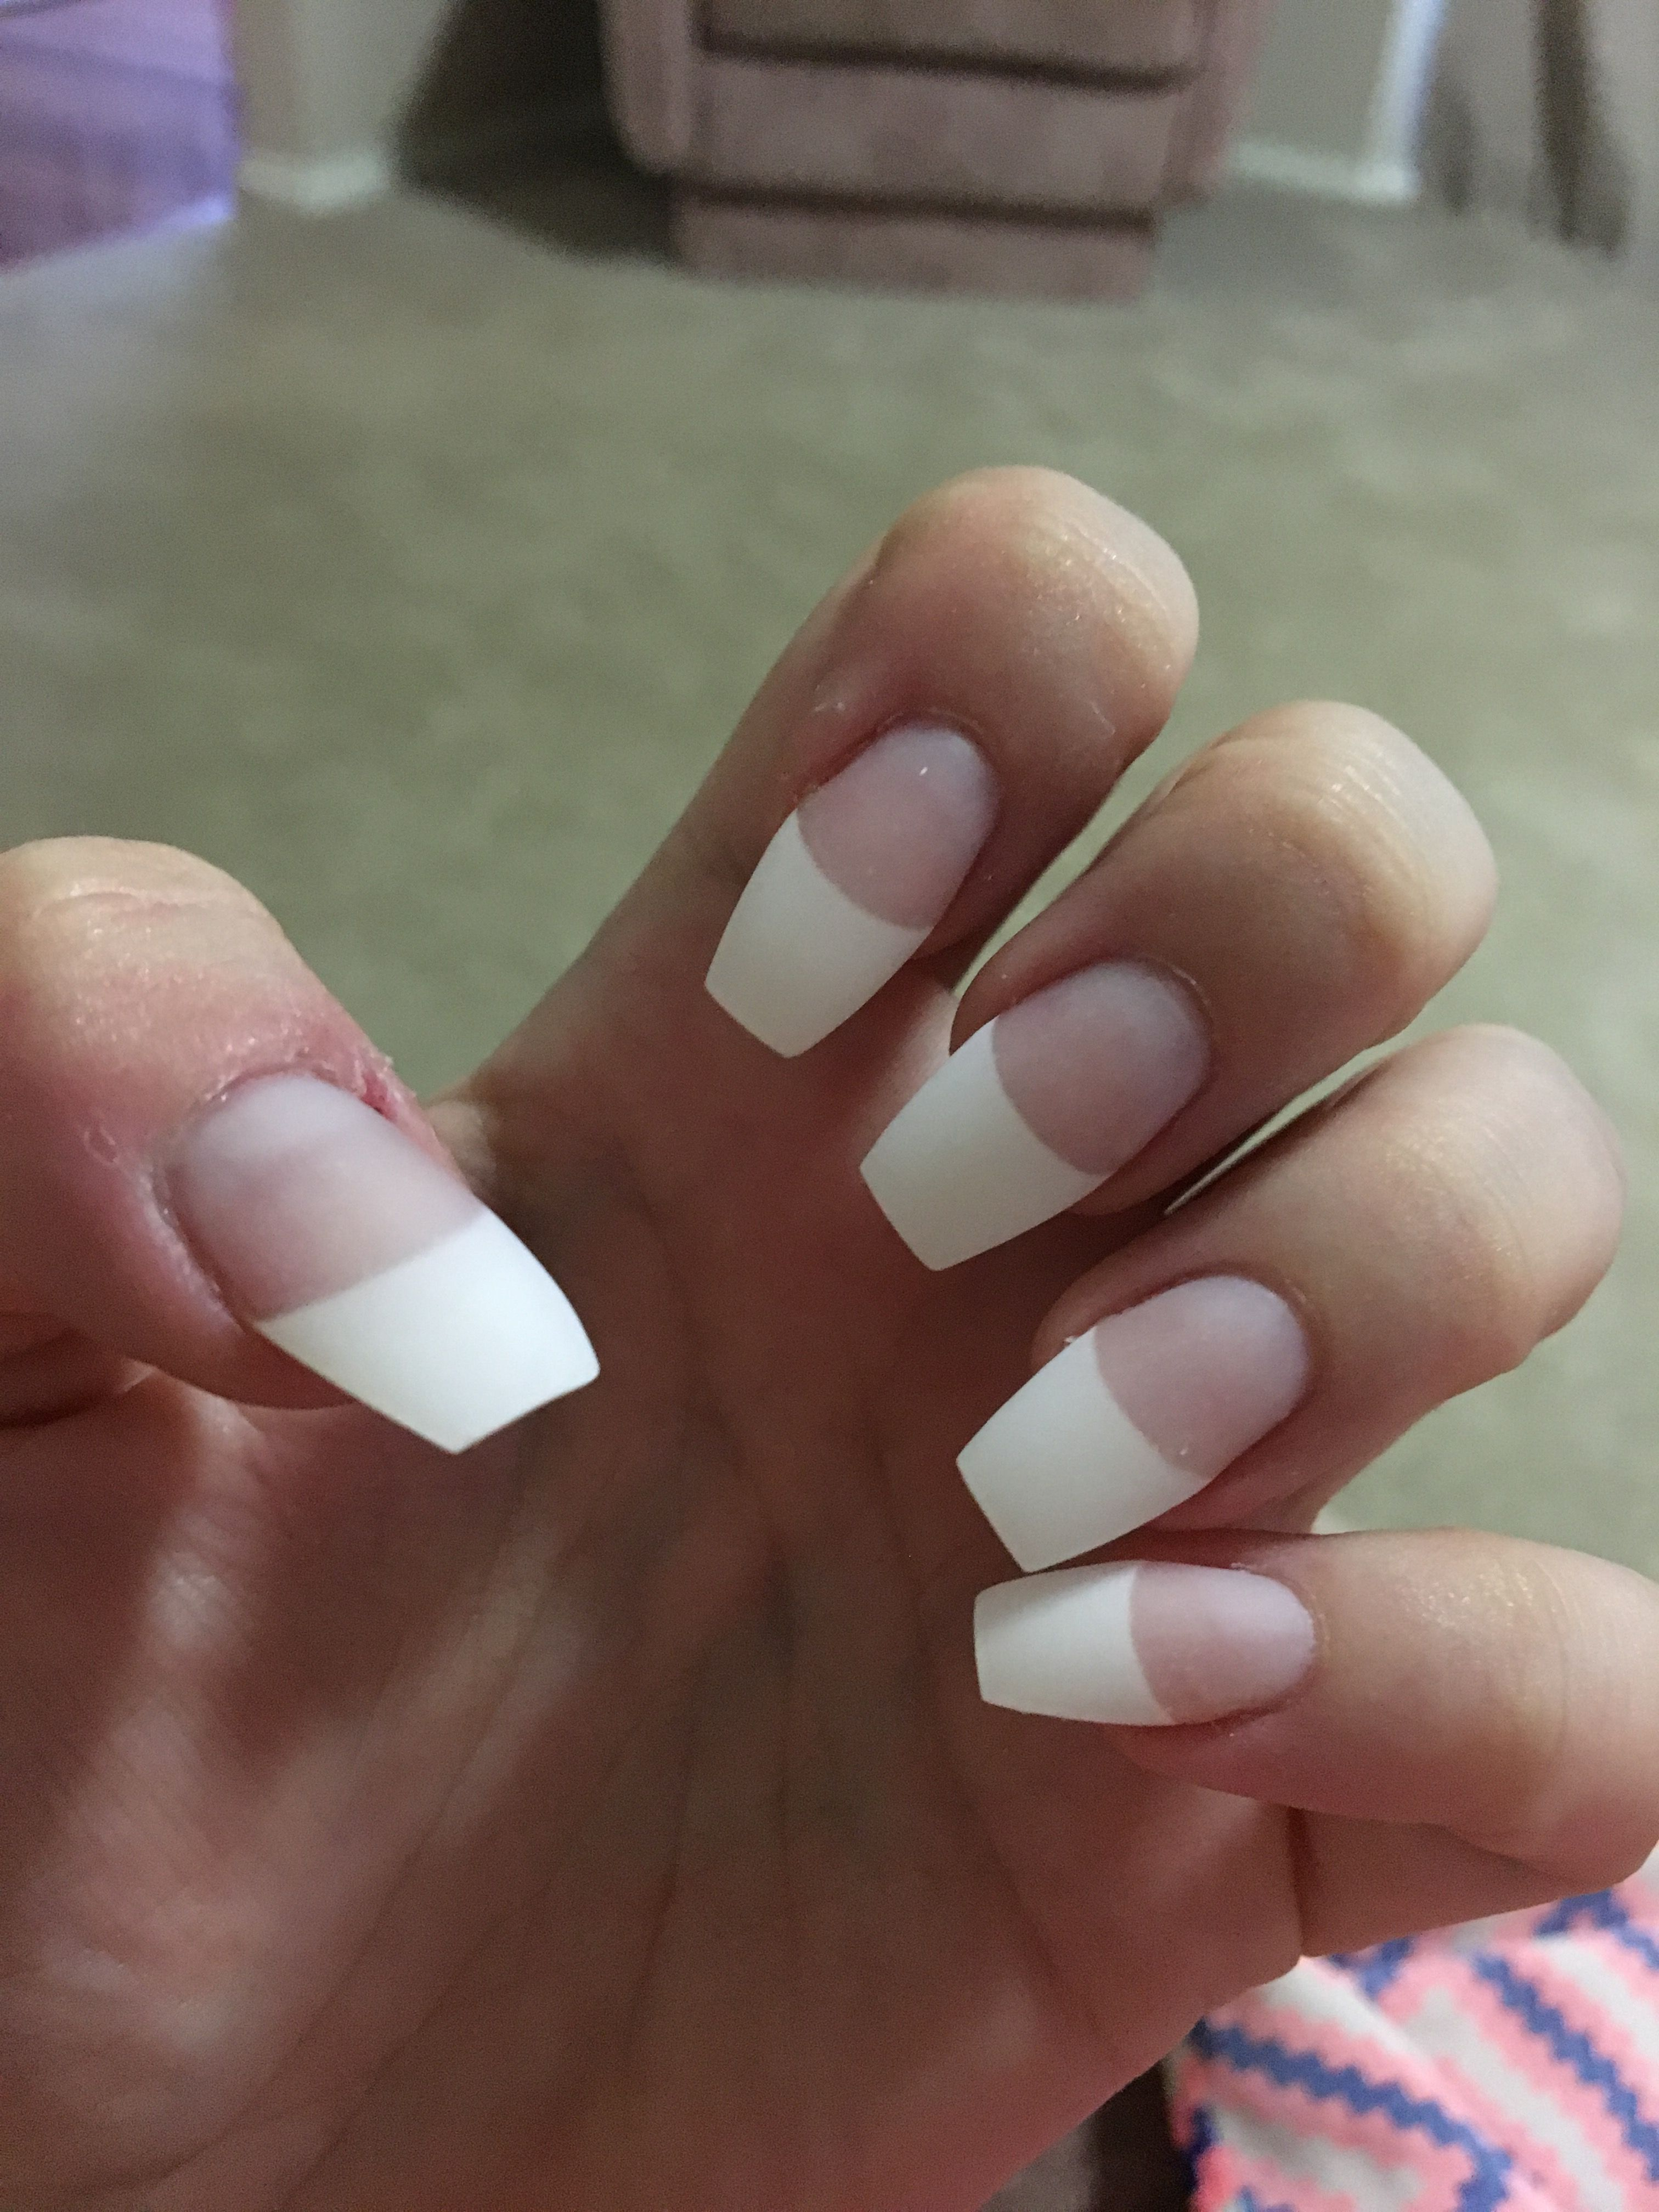 Matte French tip coffin nails   nails   Pinterest   Coffin nails